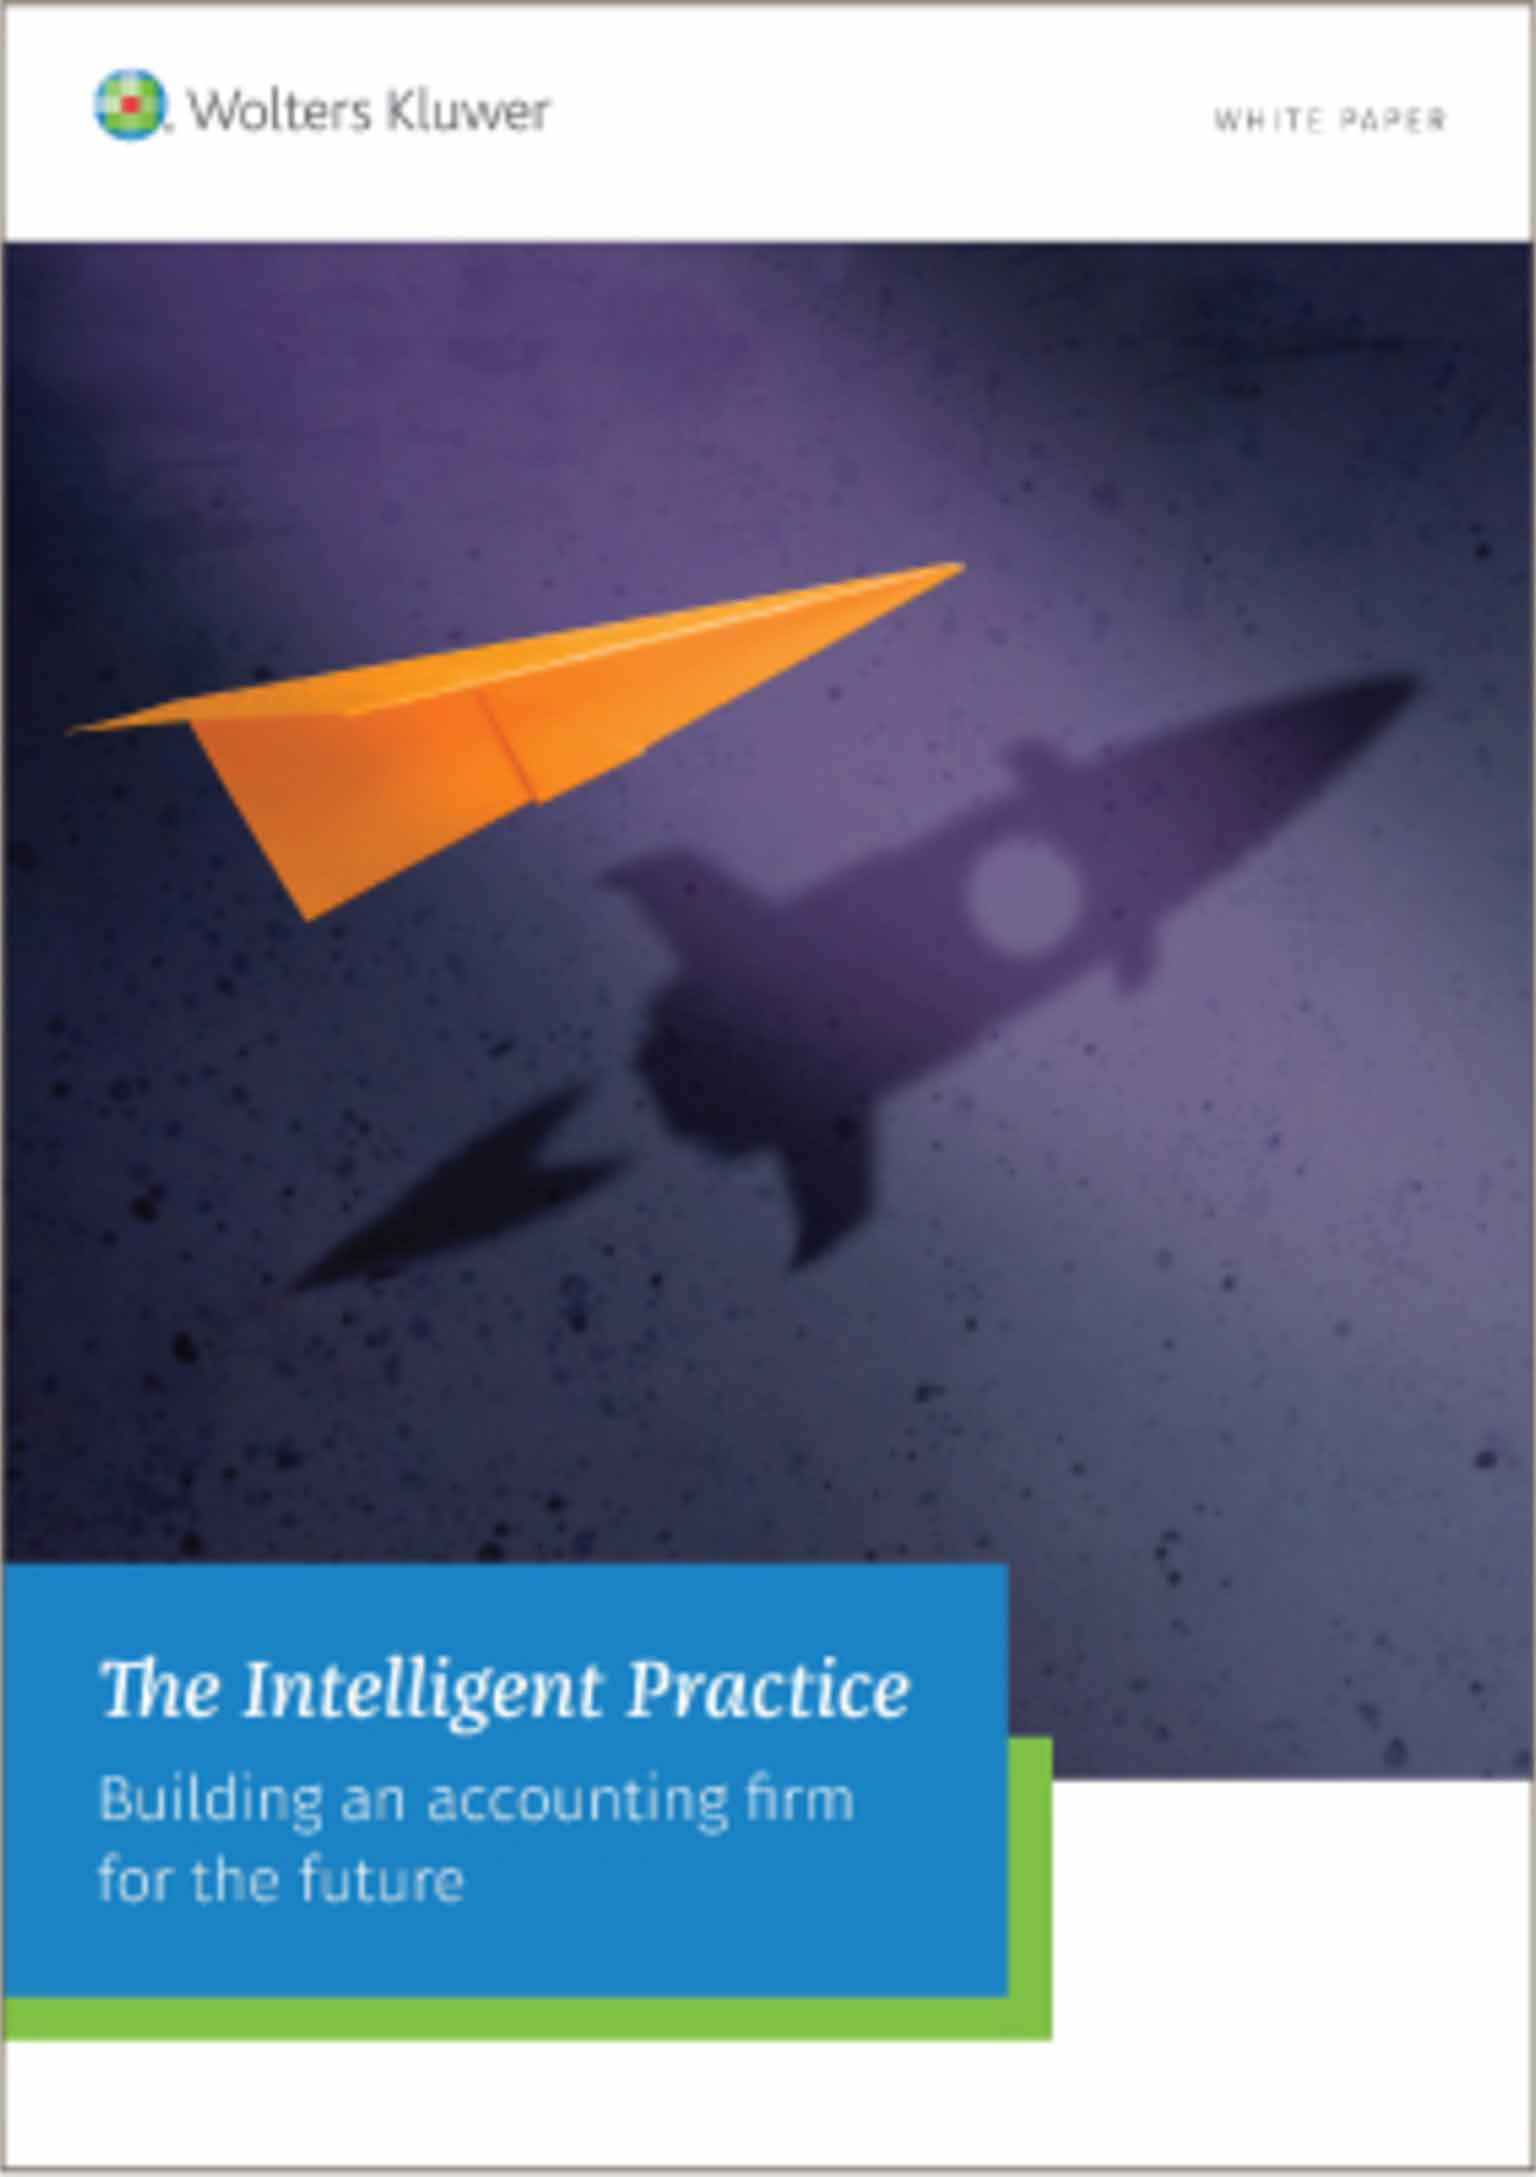 The-Intelligent-Practice-Building-an-Accounting-Firm-for-the-Future